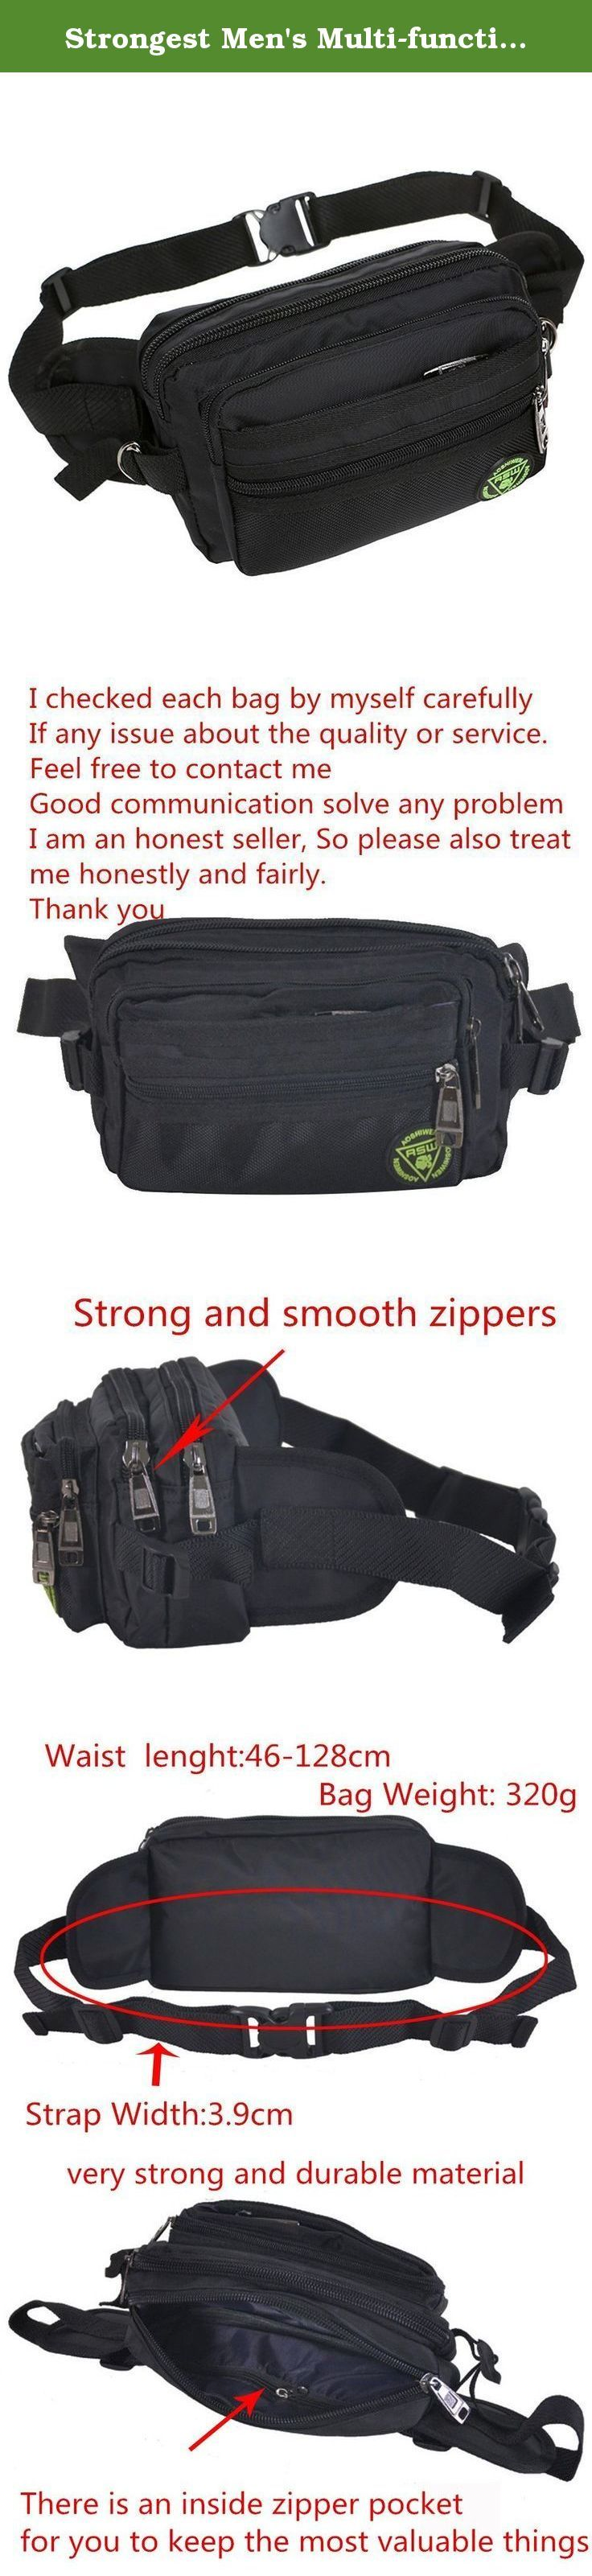 Strongest Men's Multi-functional Waist Pack Waist Bag Fanny Bag for Hiking Camping,Travel and other Outdoor Activities (Black). Durable nylon and fine workmanship,great bag for carrying personal stuffs,such as wallets,keys,cell phone and small automatic umbrella,best organizer for travelling and sports.The multiple zippers design makes it neat and keep your things at hand.Outdoor activities and leisure use. If there is any question, please feel free to contact us, Good communication is…